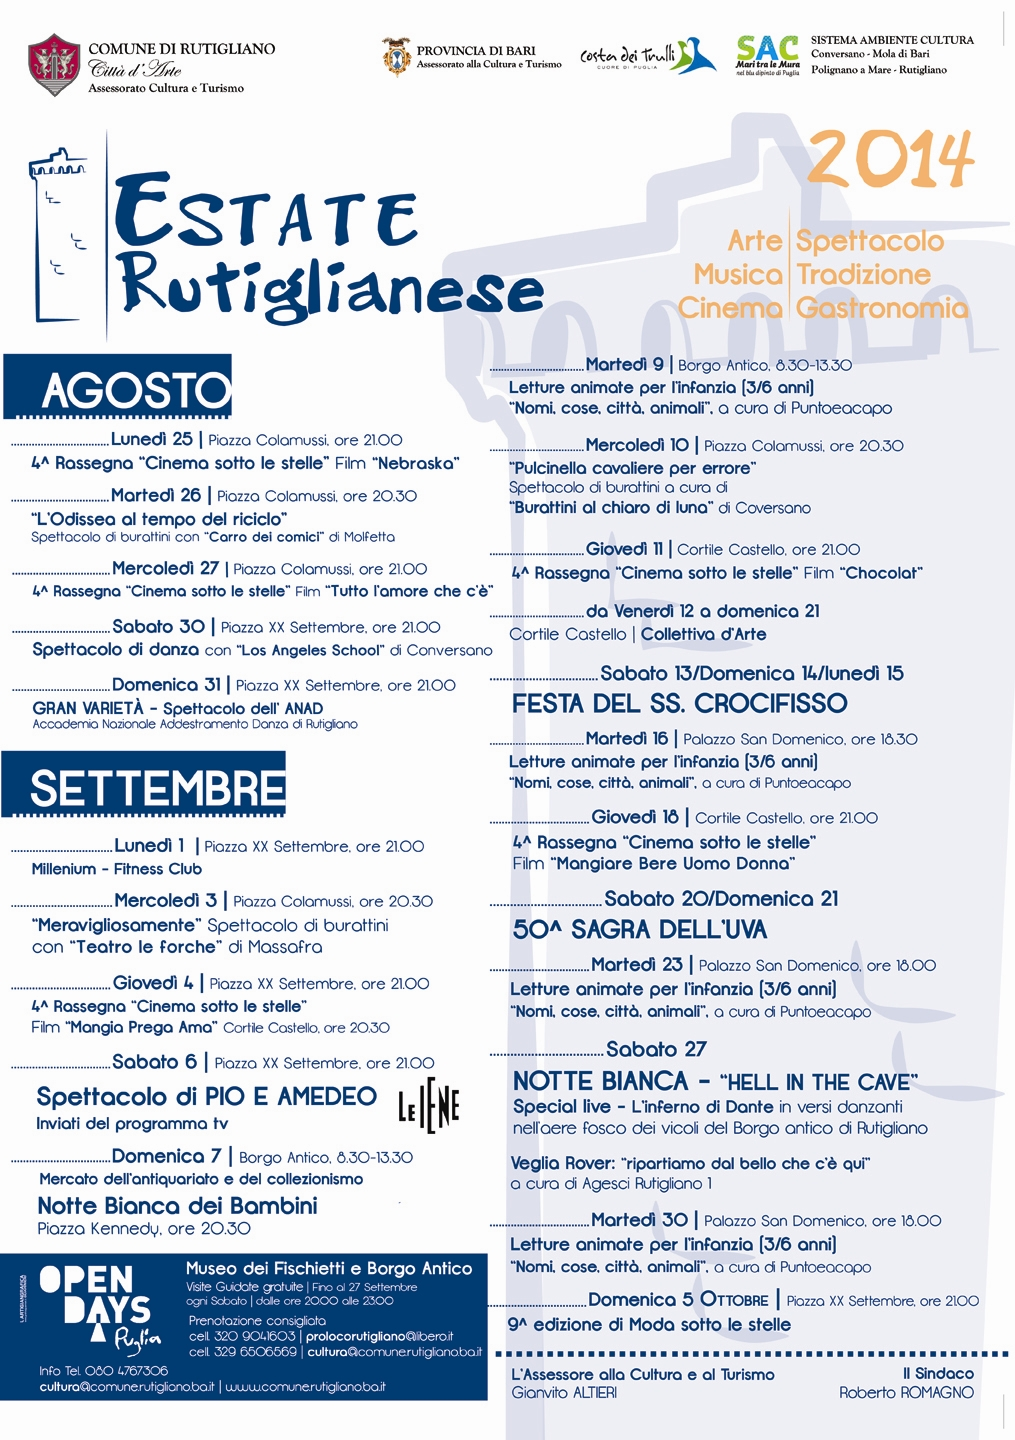 ESTATE RUTIGLIANESE 2014